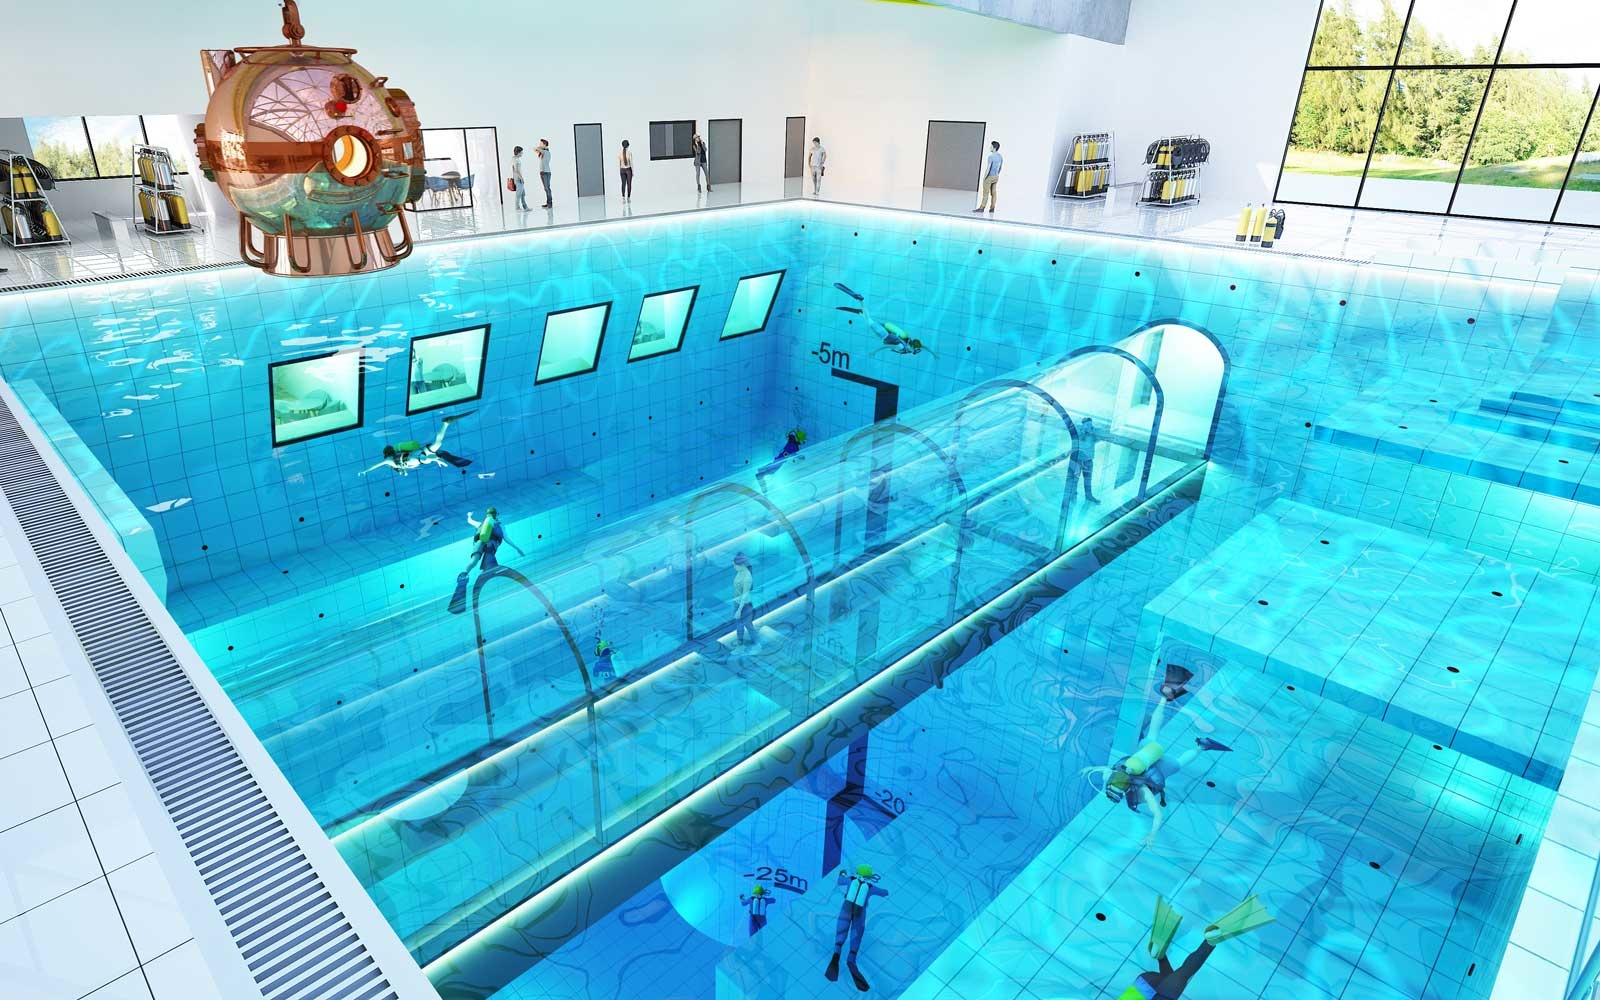 Flyspot, Deepspot - Deepest Pool in the world in Poland